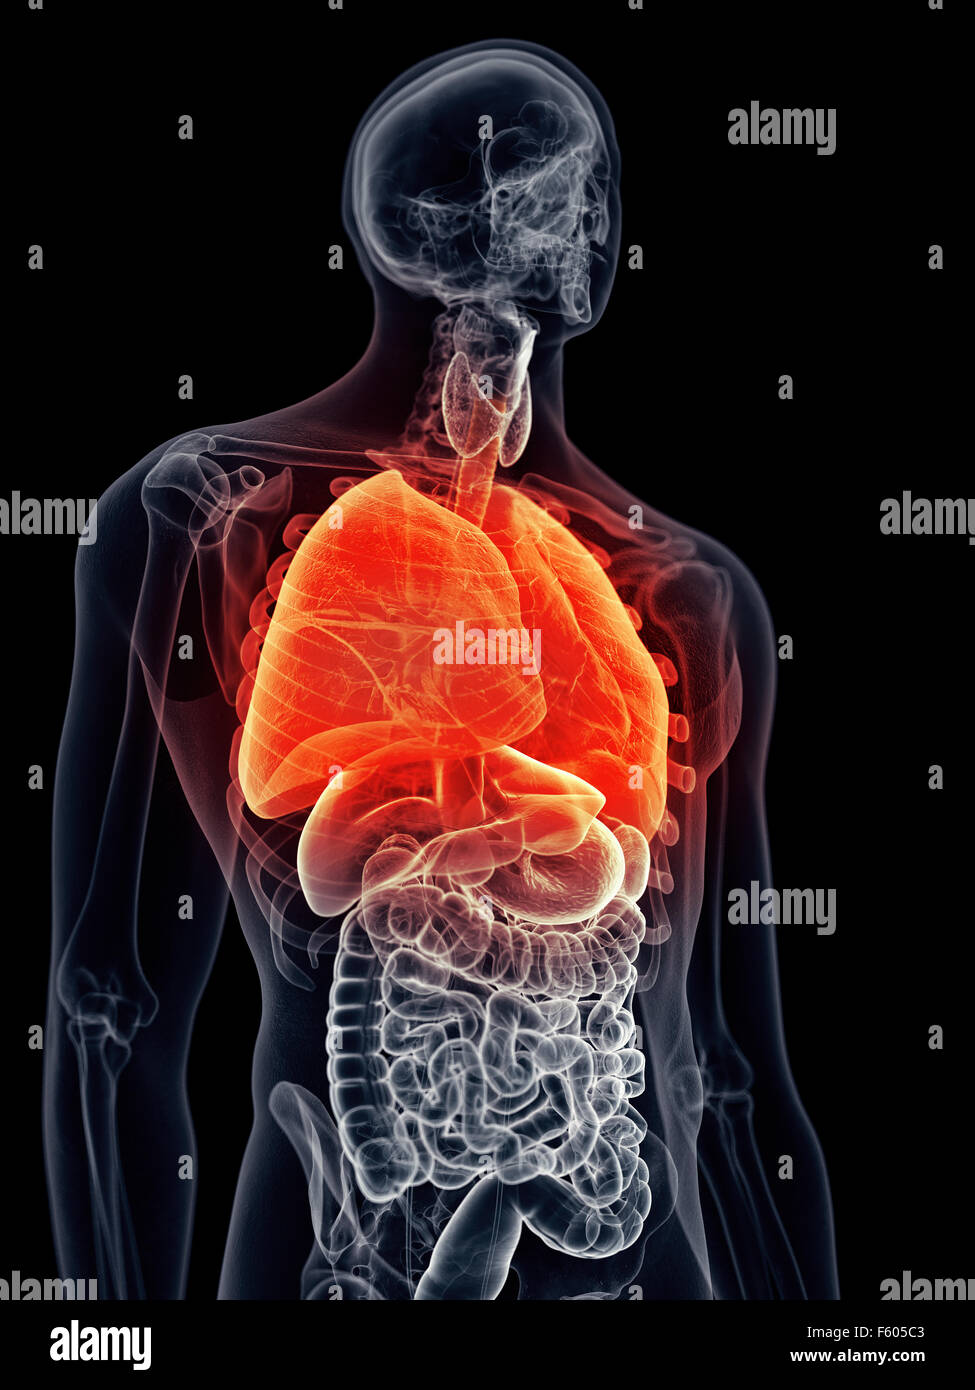 medically accurate illustration - painful lung - Stock Image